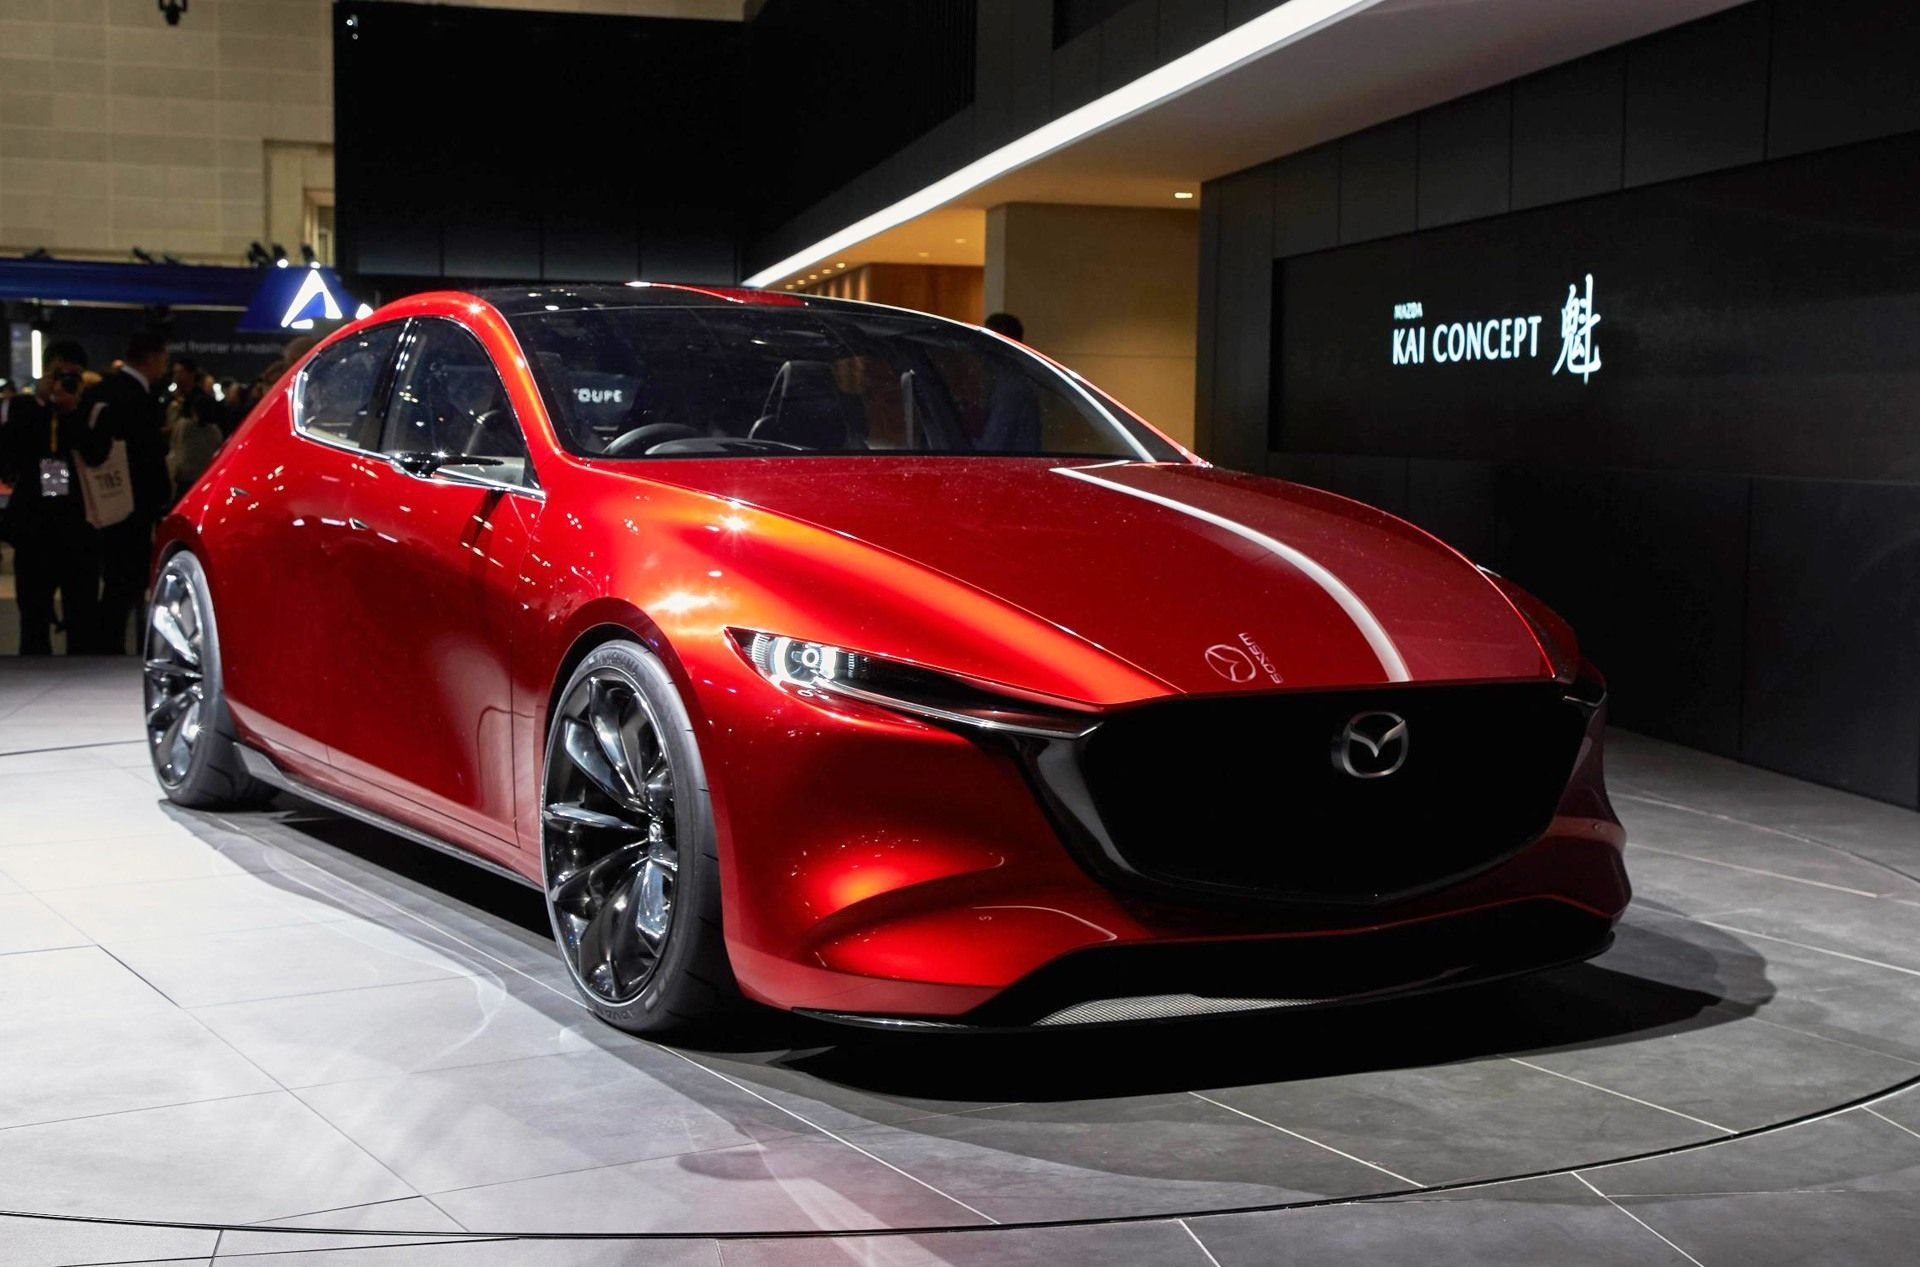 2019 Mazda 3 Sedan 2018 Car Interior, Exterior and